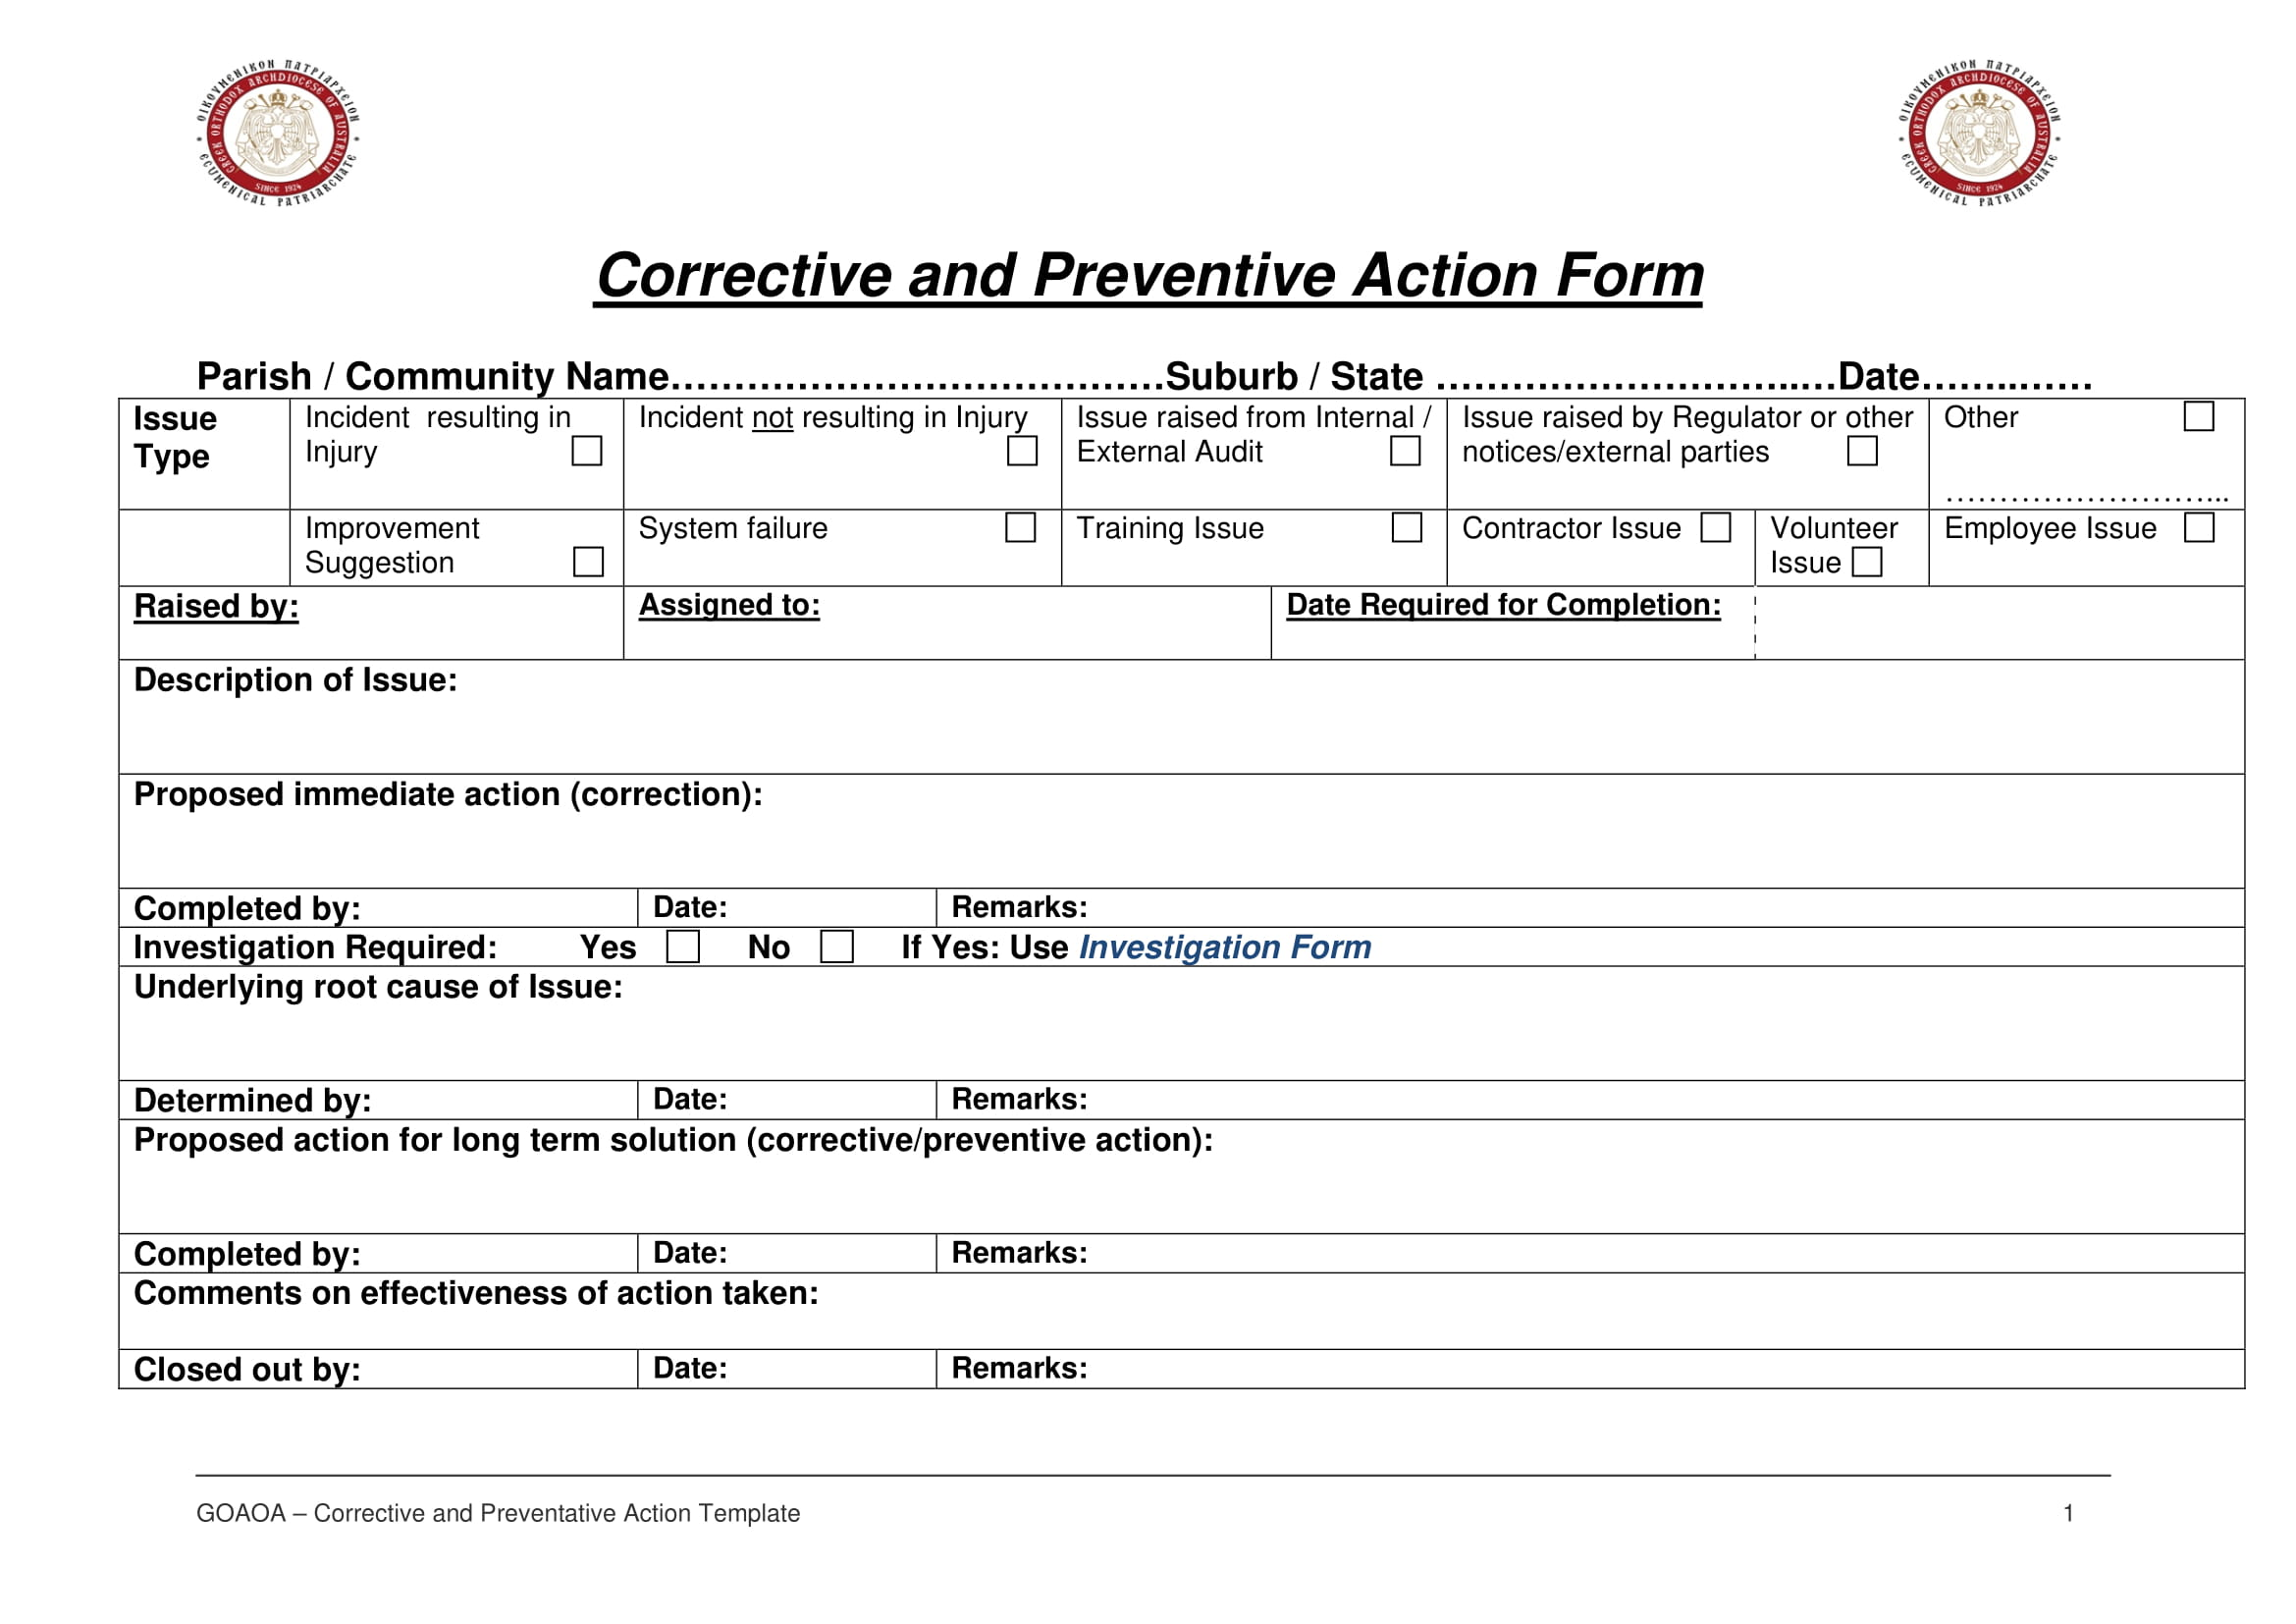 corrective and preventive action report form example 1